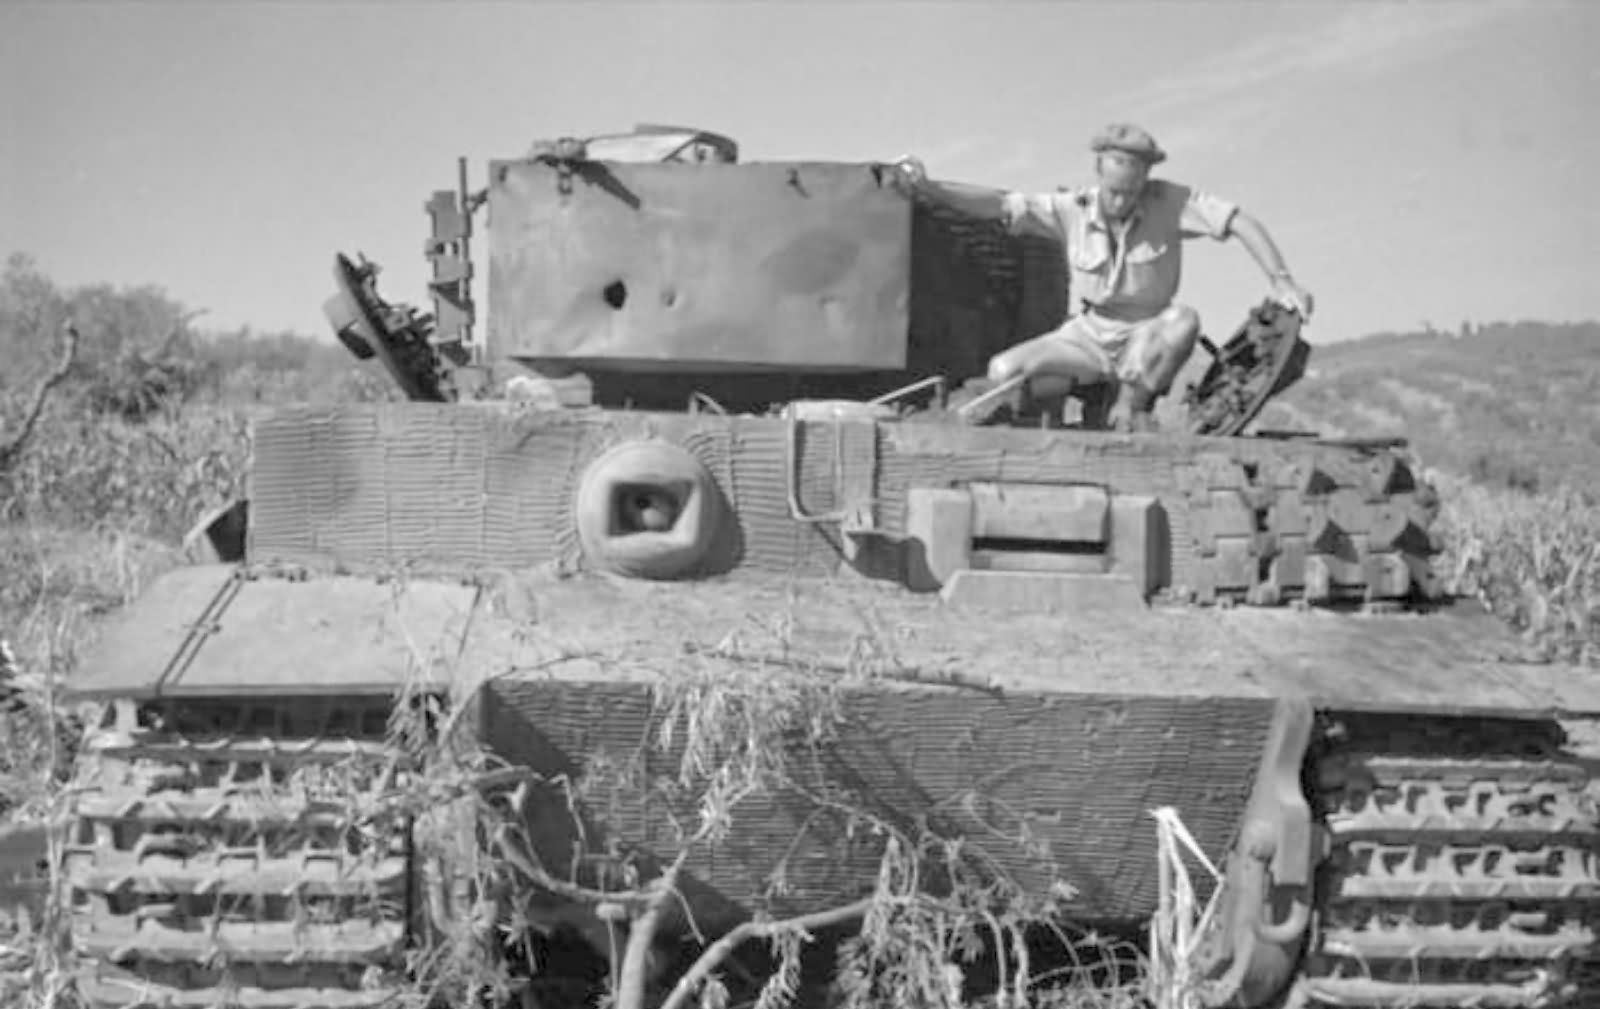 Tiger I with zimmerit of schwere Panzer-Abteilung 508, Villa Bonnaza Italy front view